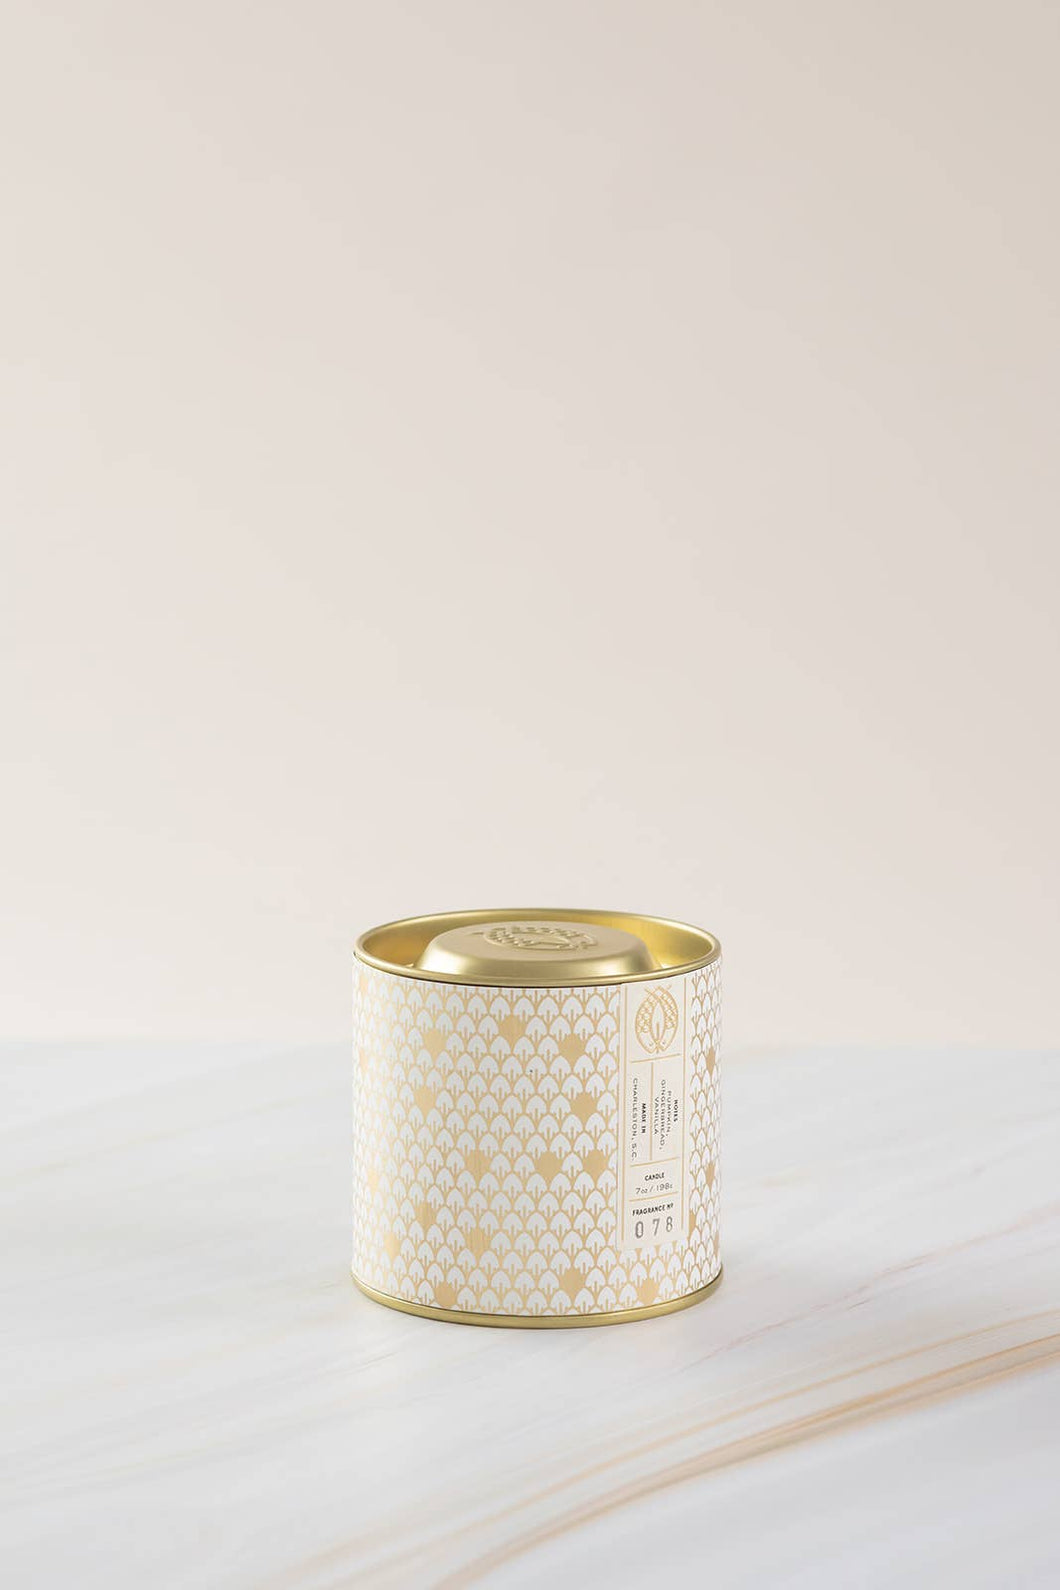 No. 78 Gold Tin w/ Embossed Lid (Fall White) 7 oz